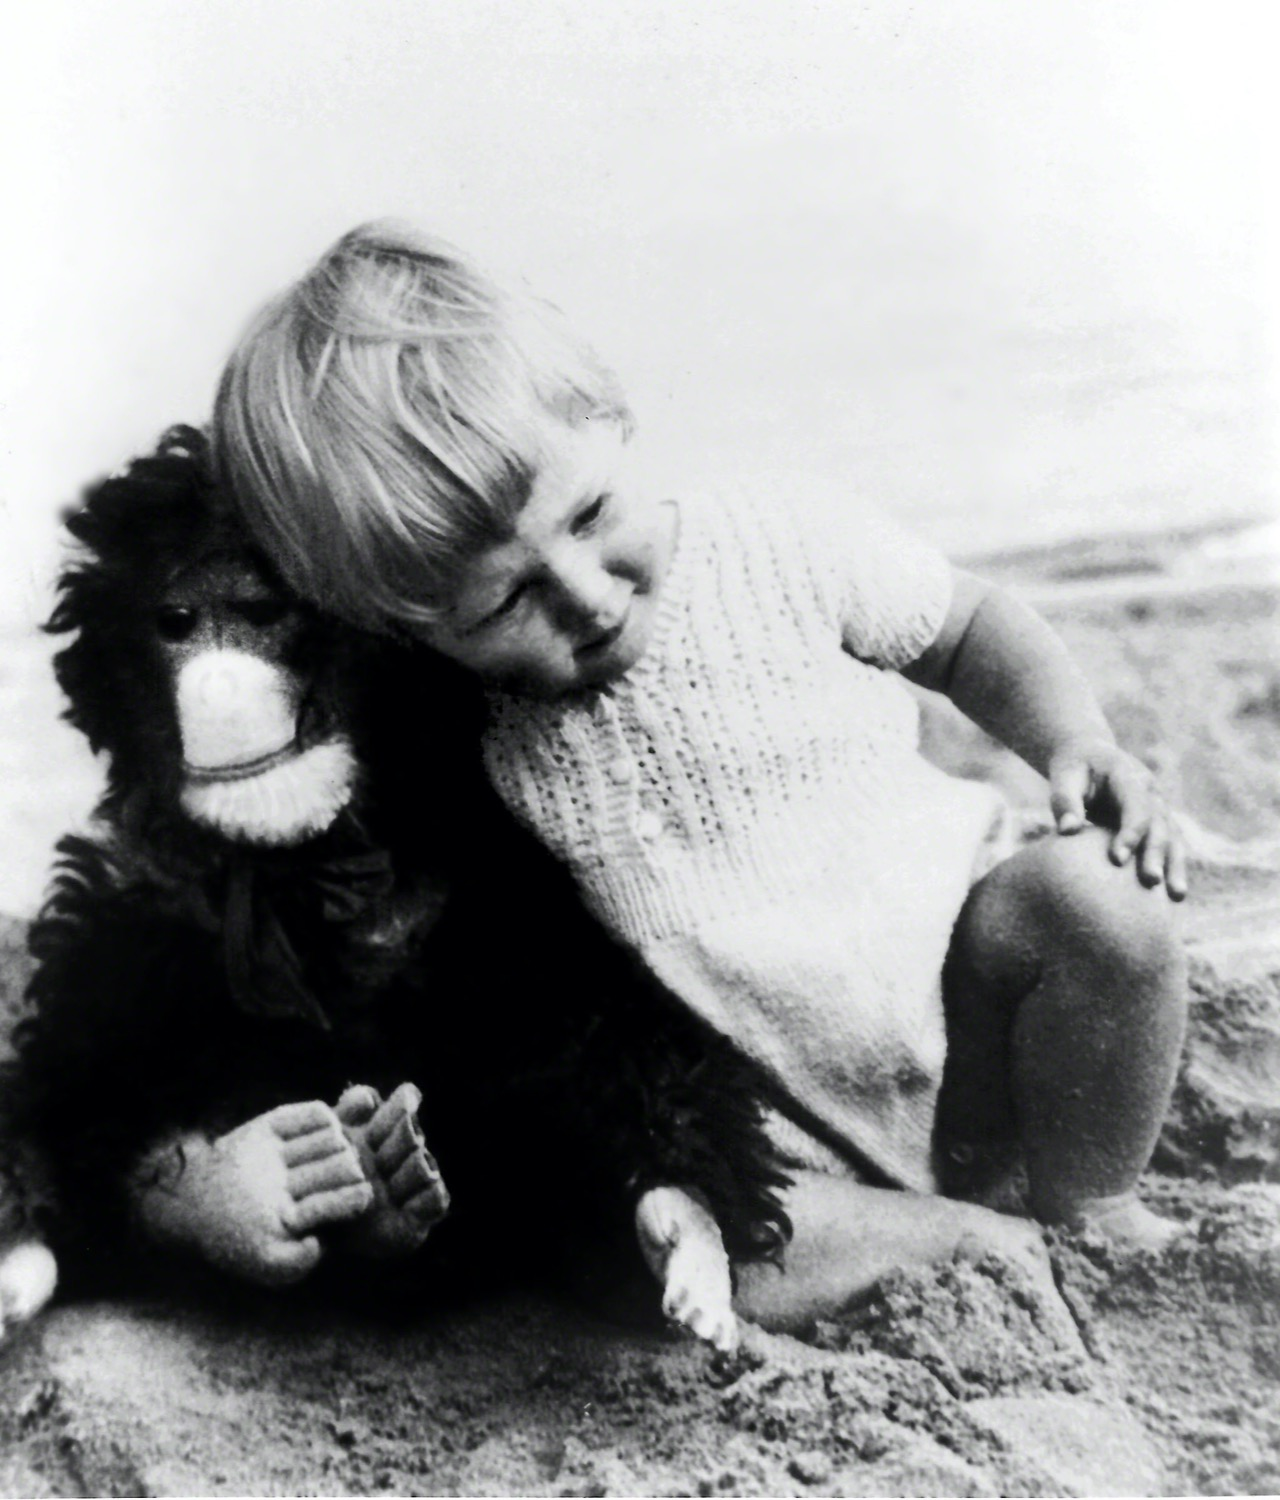 black and white image of a young girl with a monkey doll